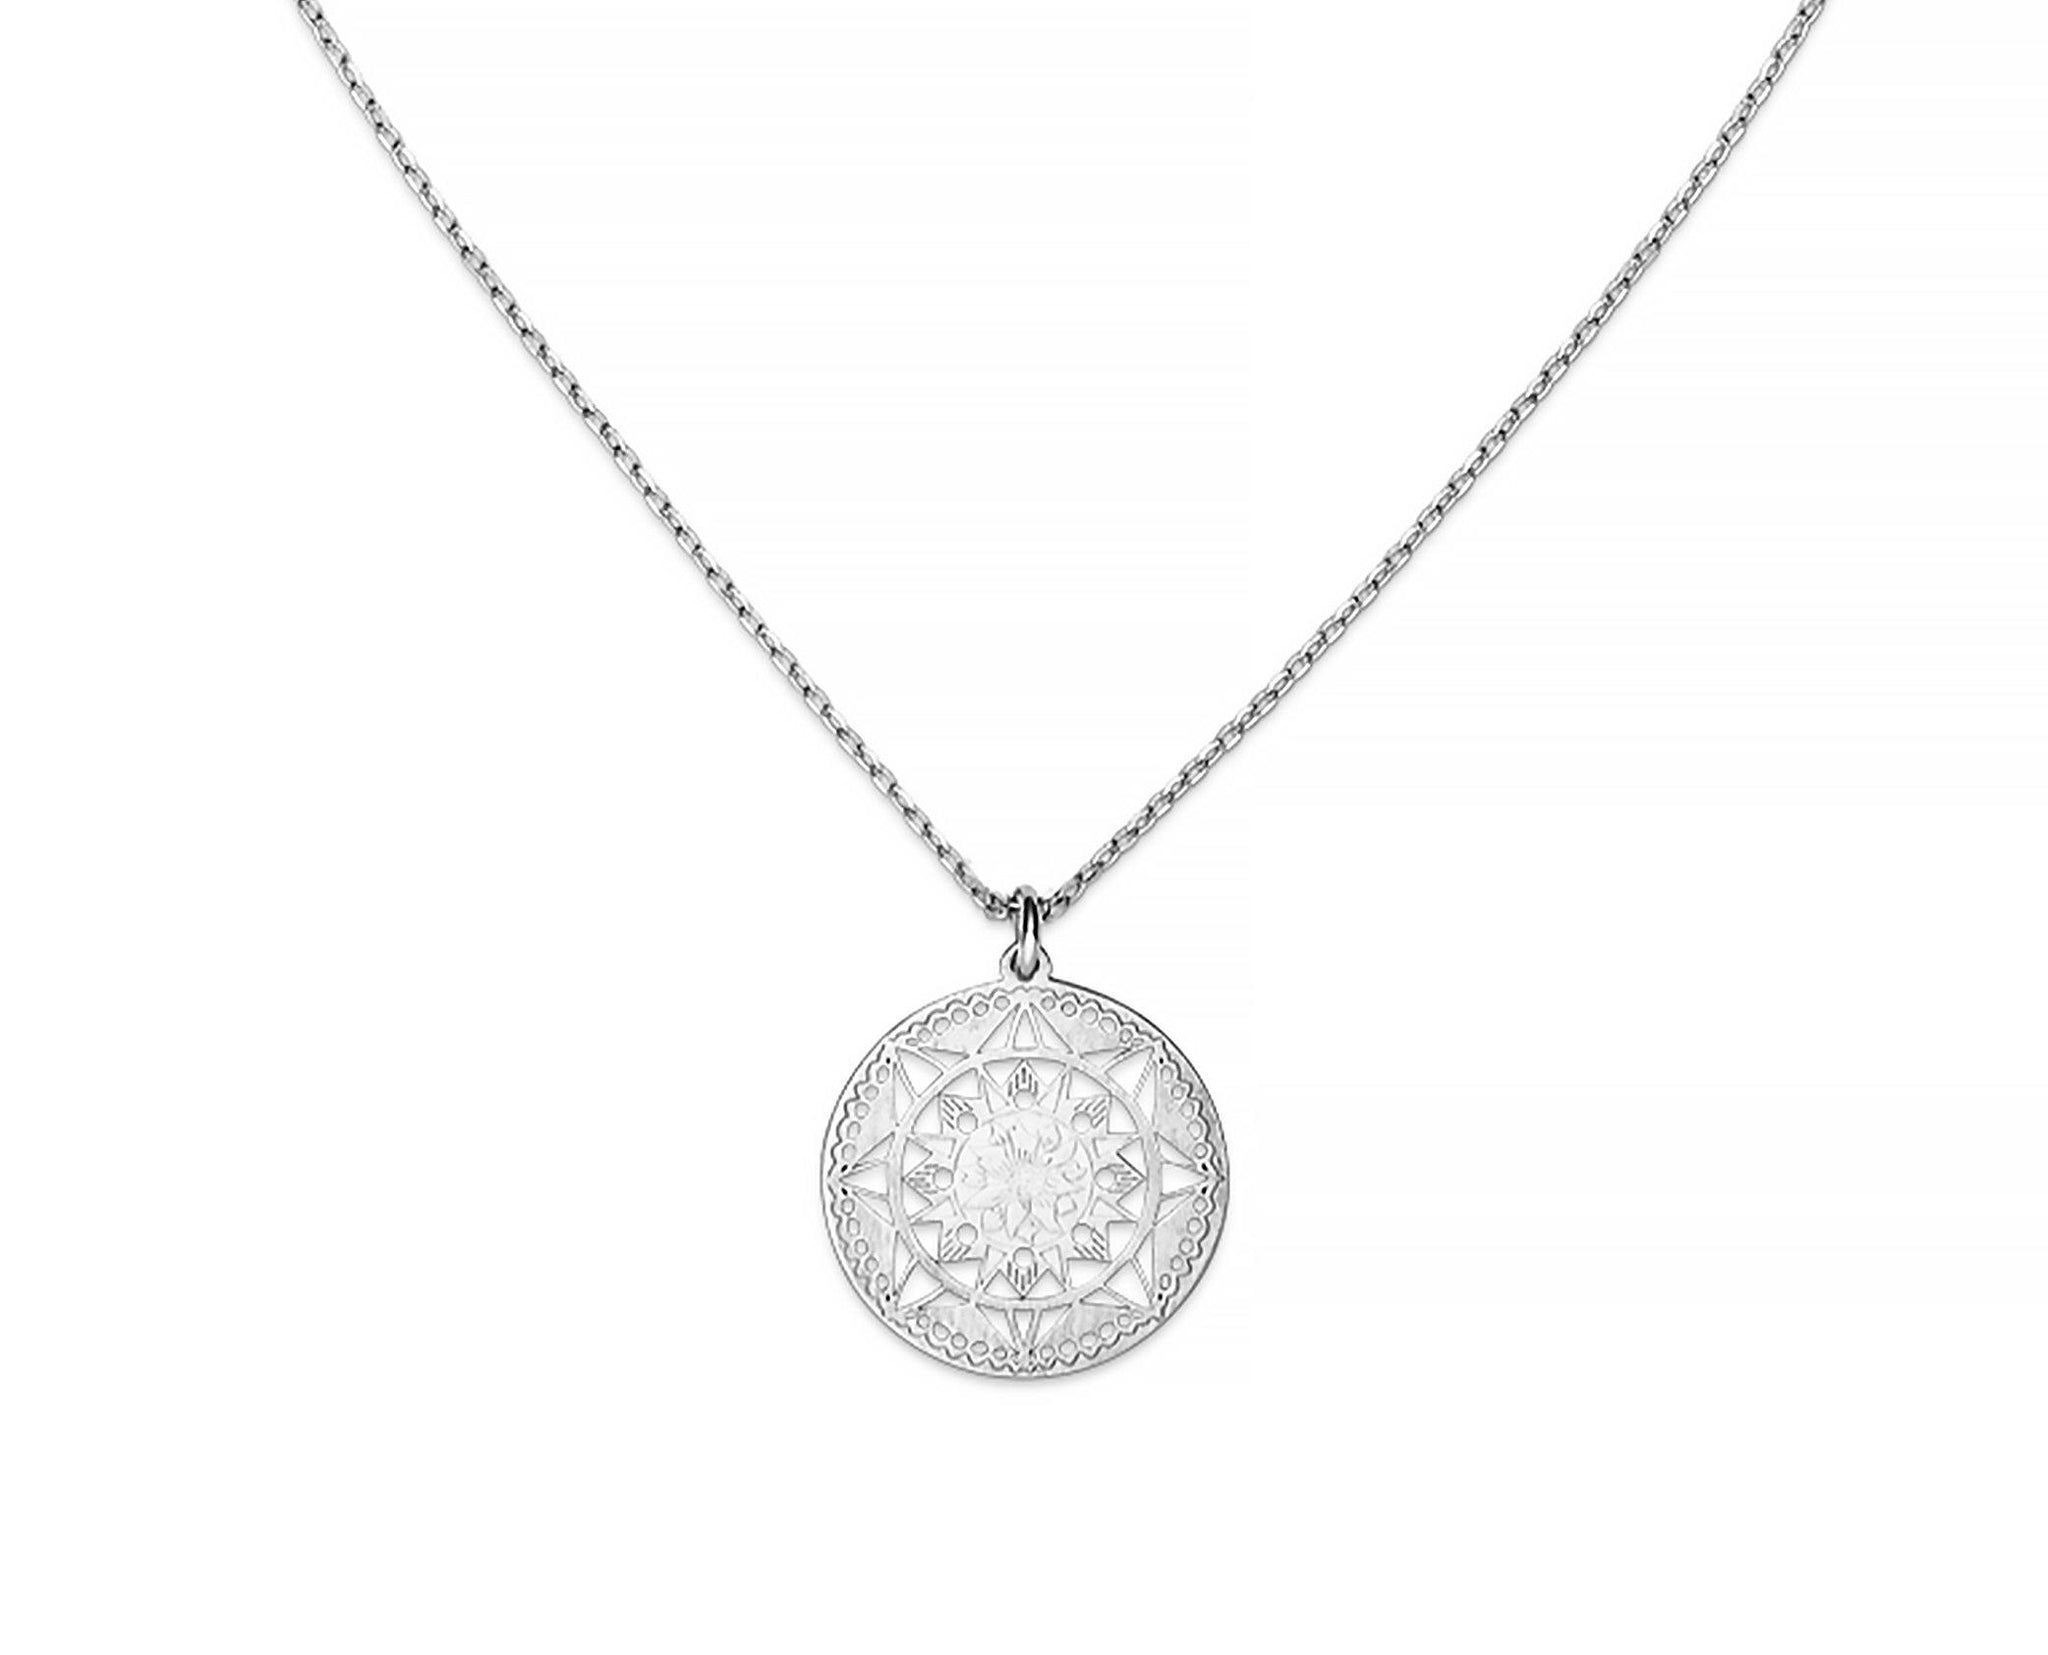 Lotus Mandala Necklace - InclusiveJewelry